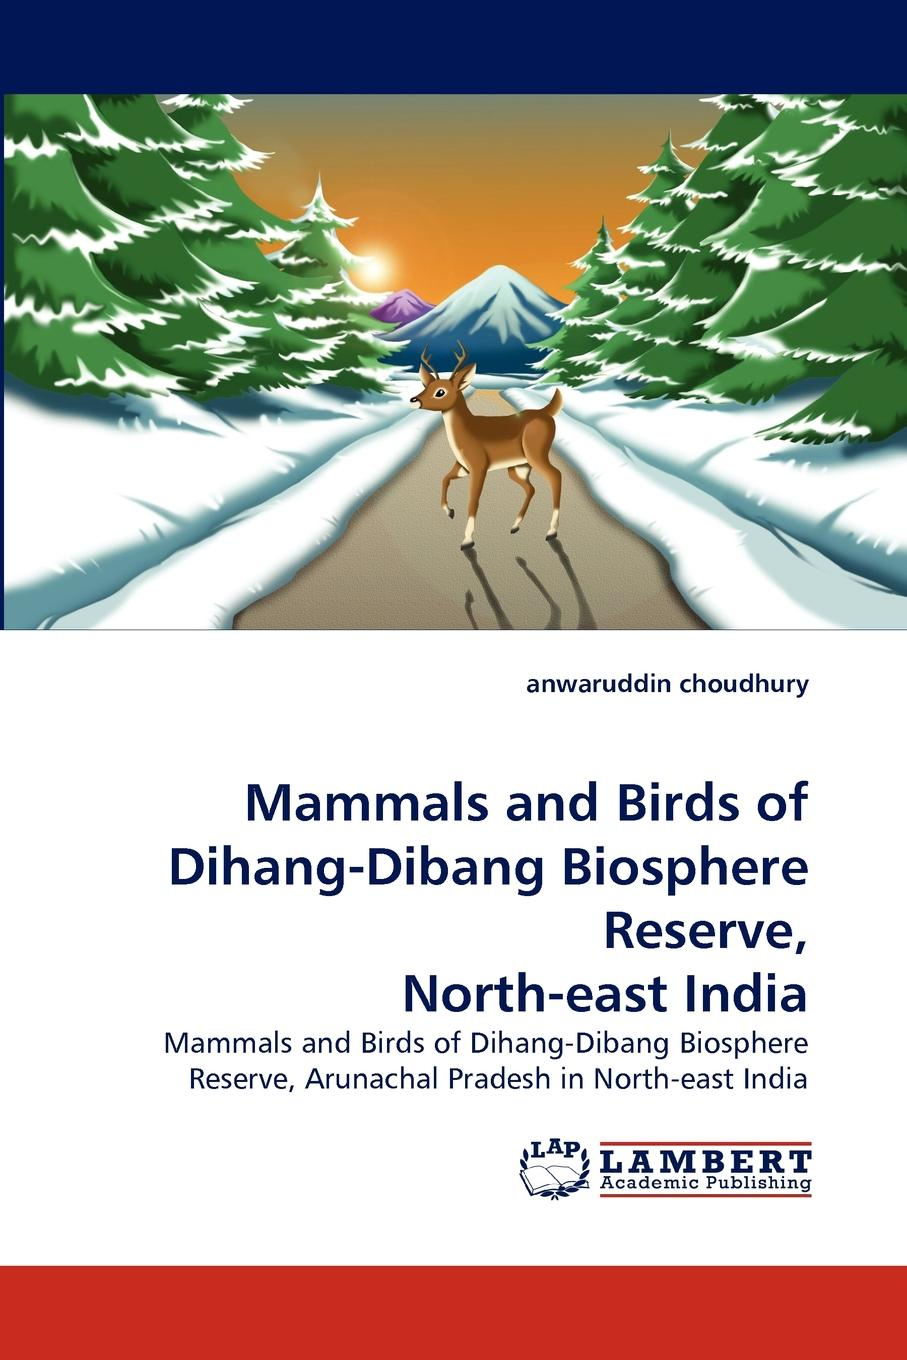 Anwaruddin Choudhury Mammals and Birds of Dihang-Dibang Biosphere Reserve, North-East India conservation of swamp deer in terai grassland of northern india